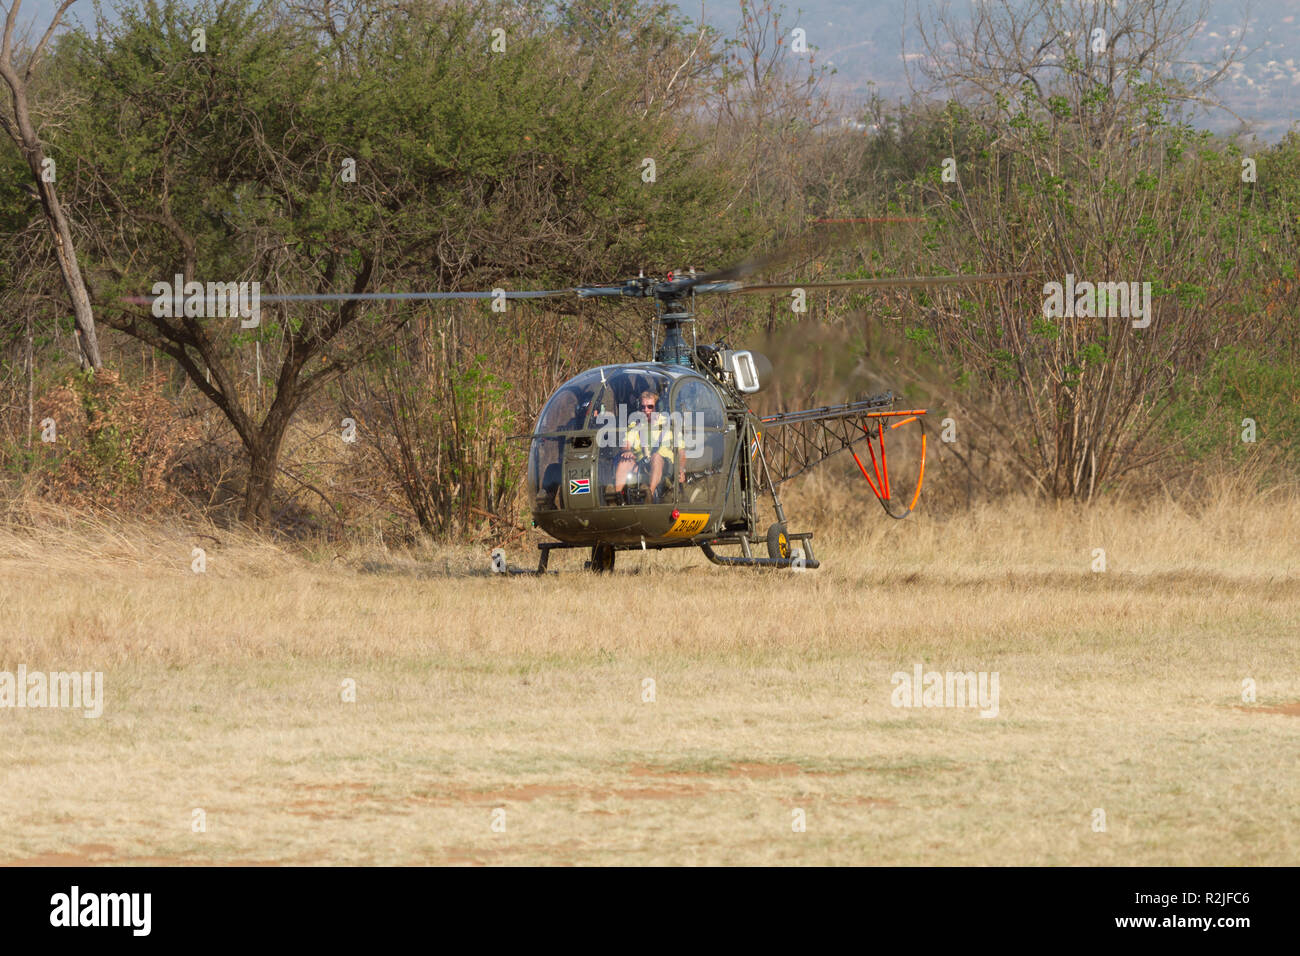 French Alouette helicopter landing at a bush destination in South Africa - Stock Image